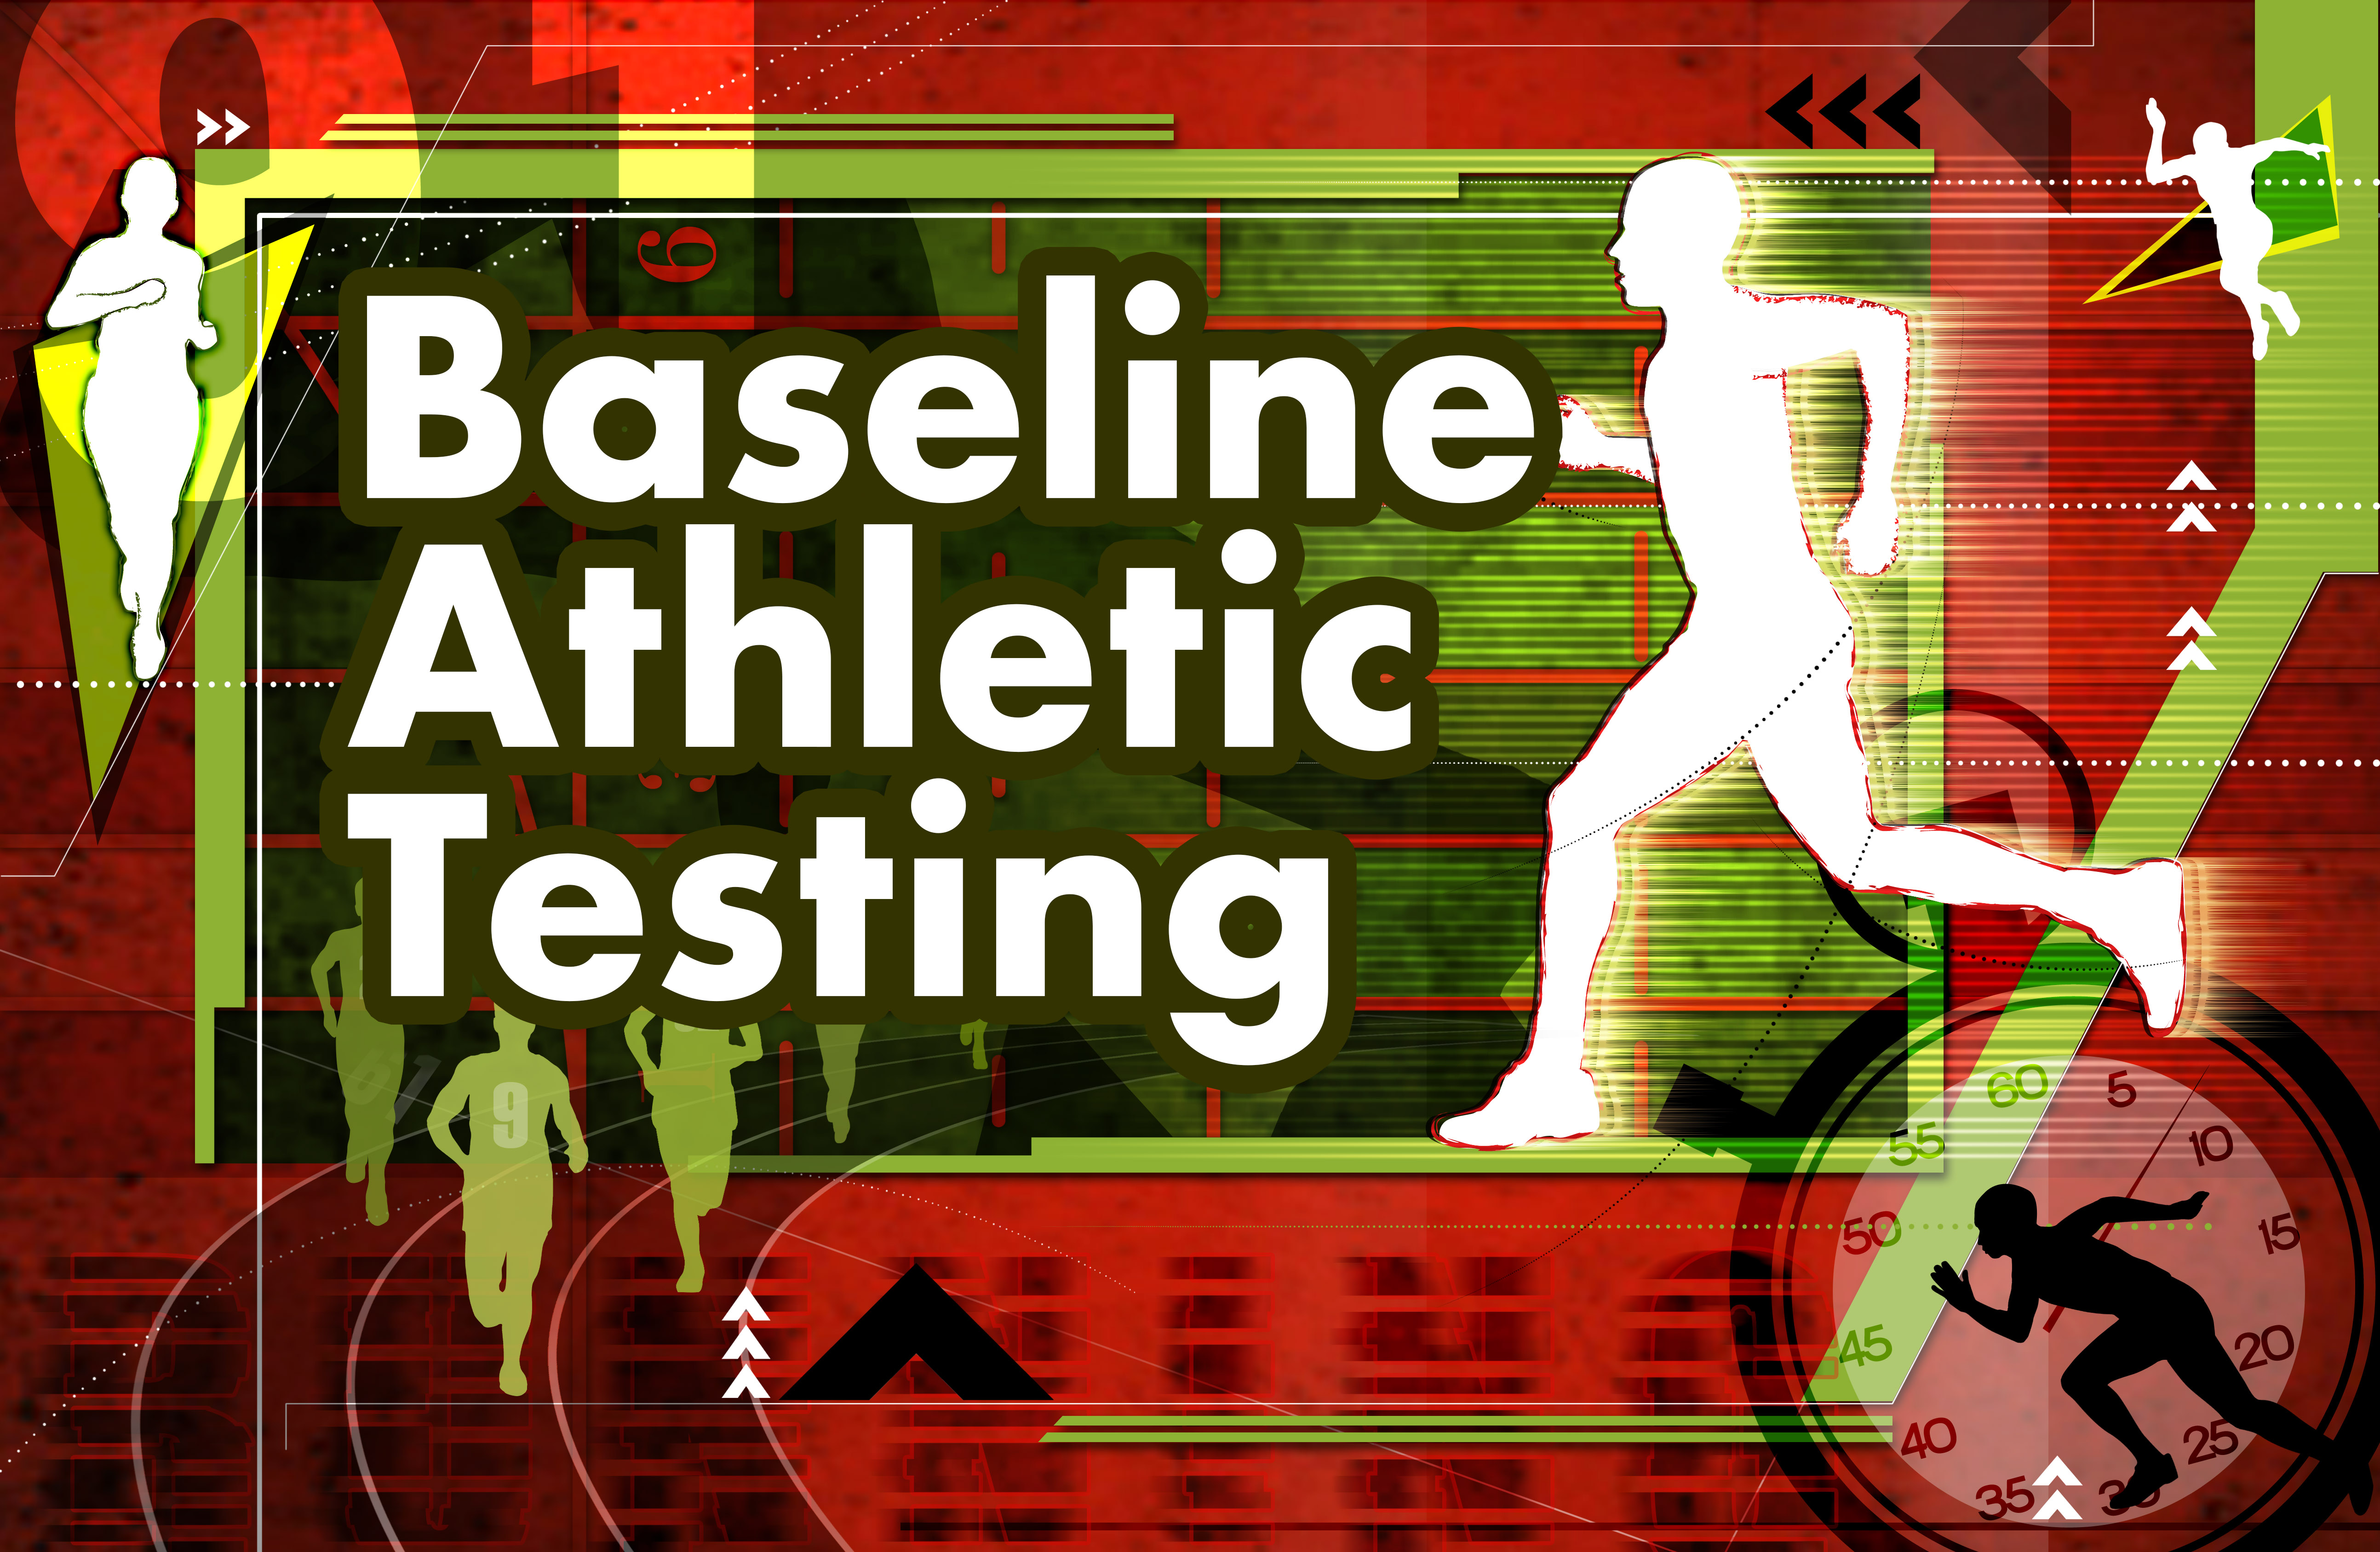 Text says Baseline Athletic Testing, various silhouettes of runners